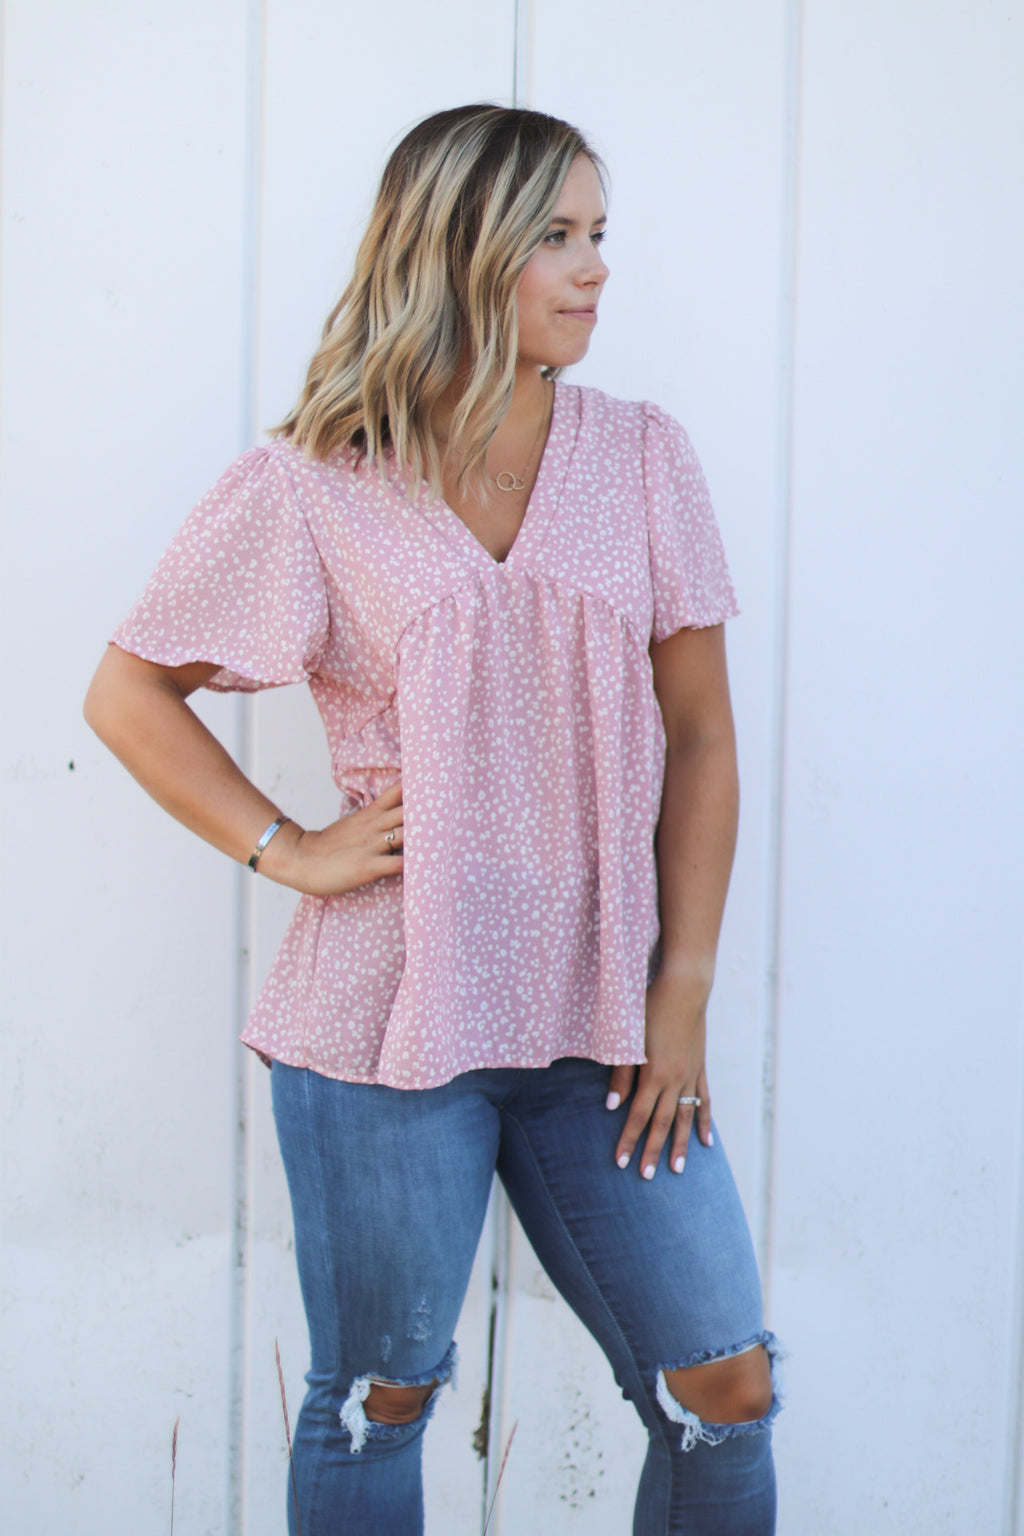 The Dottie Blouse in Rose